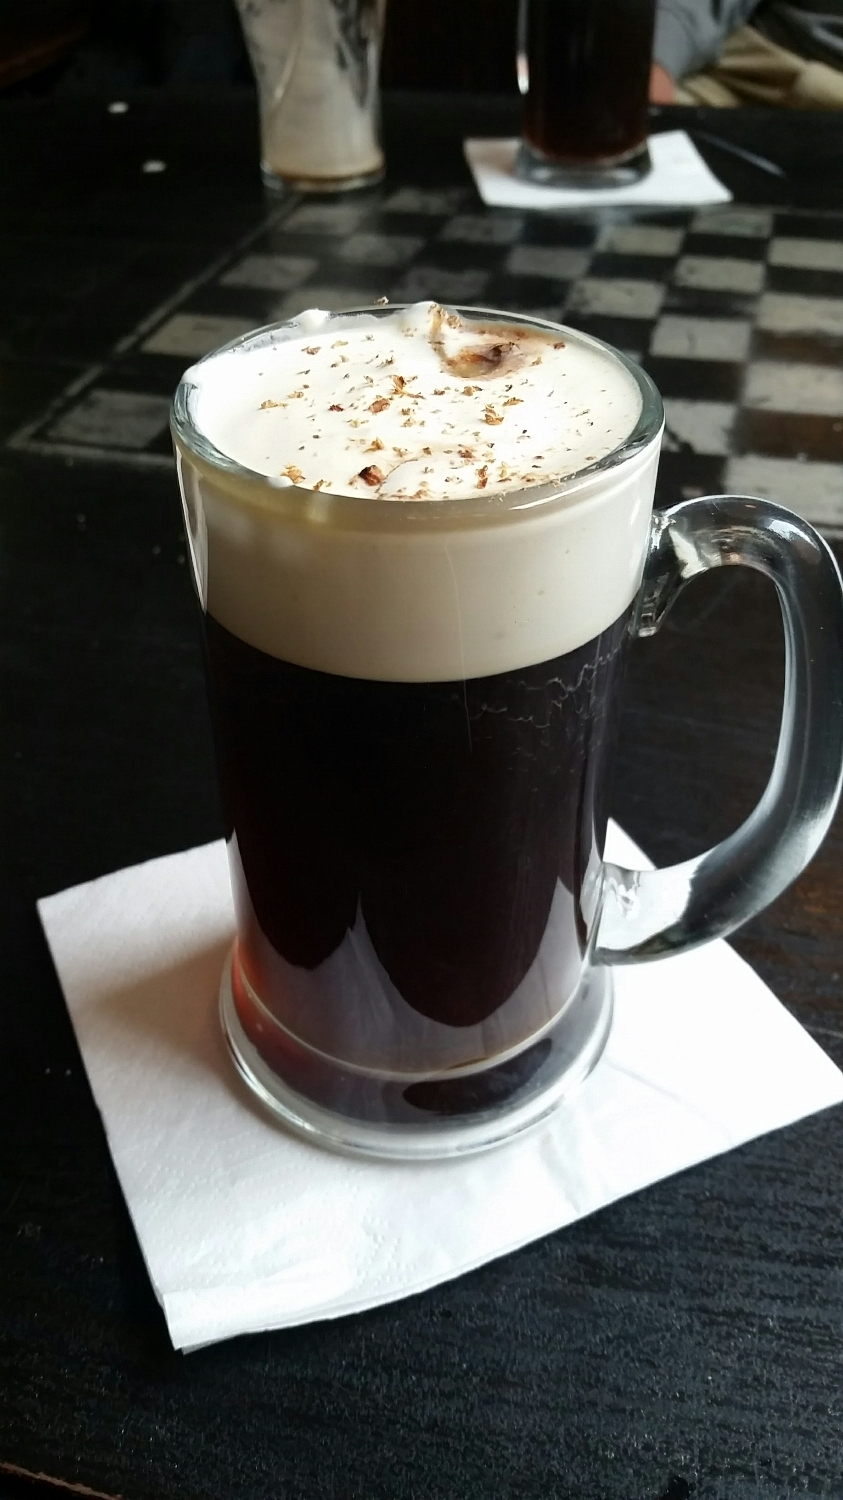 Irish coffee topped with real heavy cream and chocolate bitters. Perfection on a rainy day.